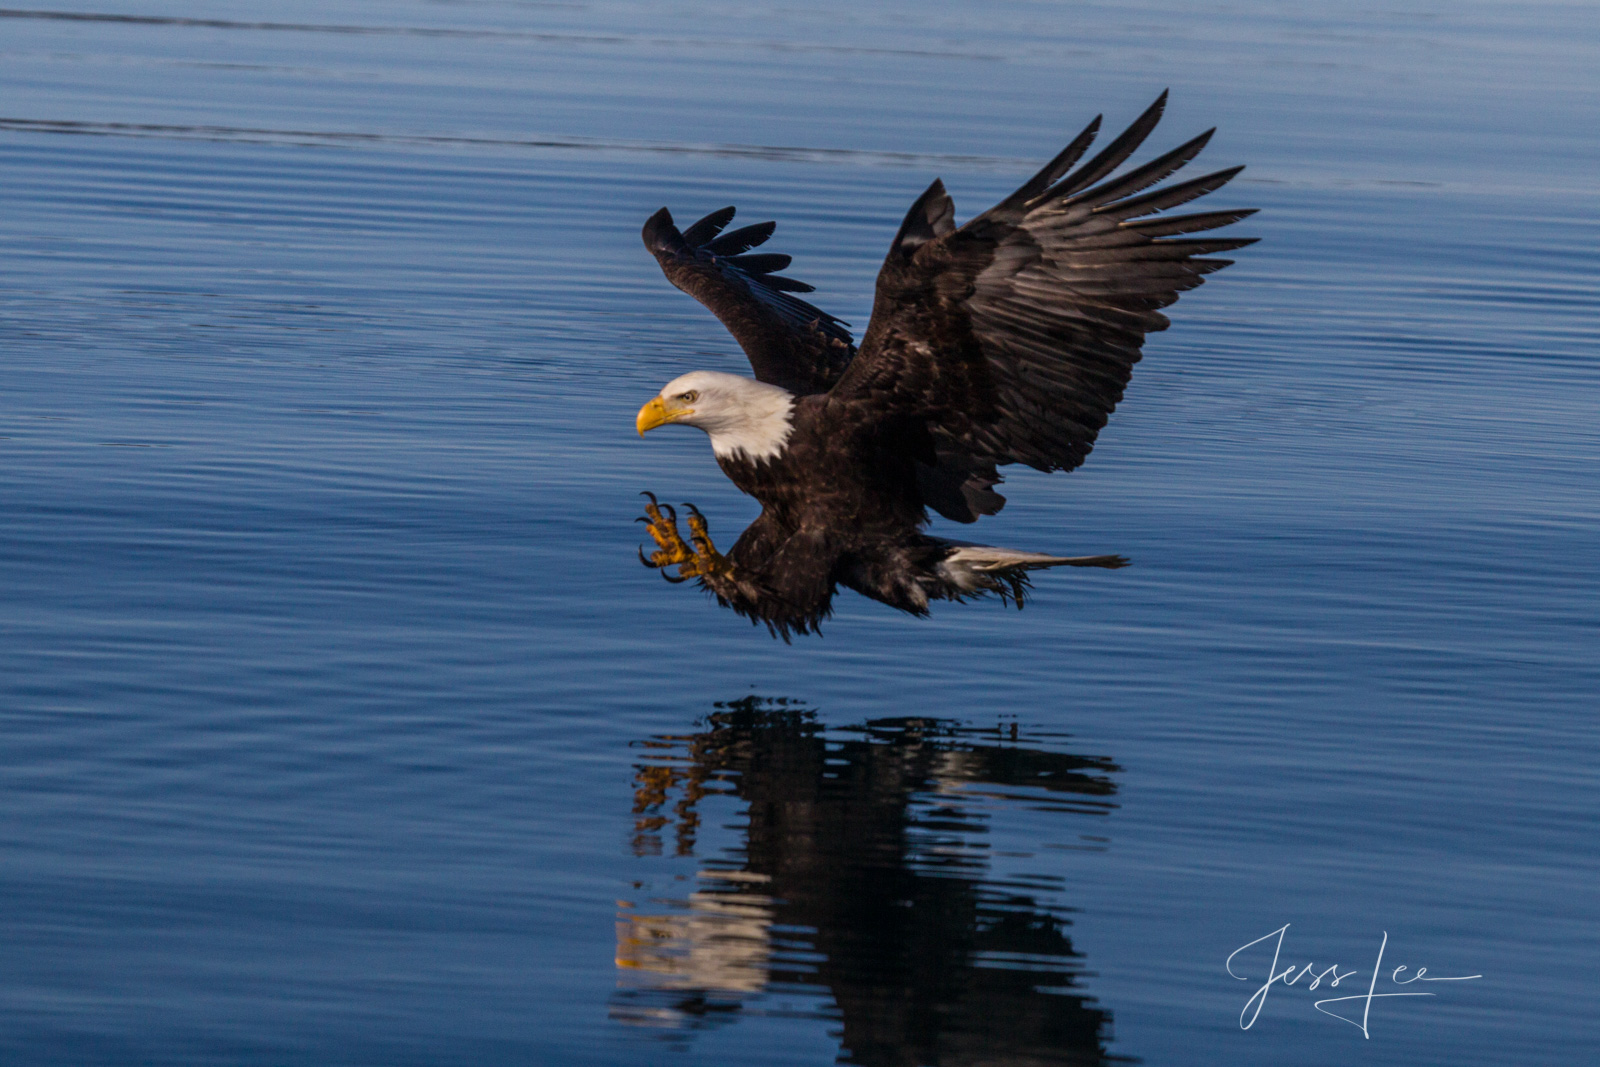 Bring home the power and beauty of the amazing fine art American Bald Eagle photograph Ready by Jess Lee from his Wildlife Photography...